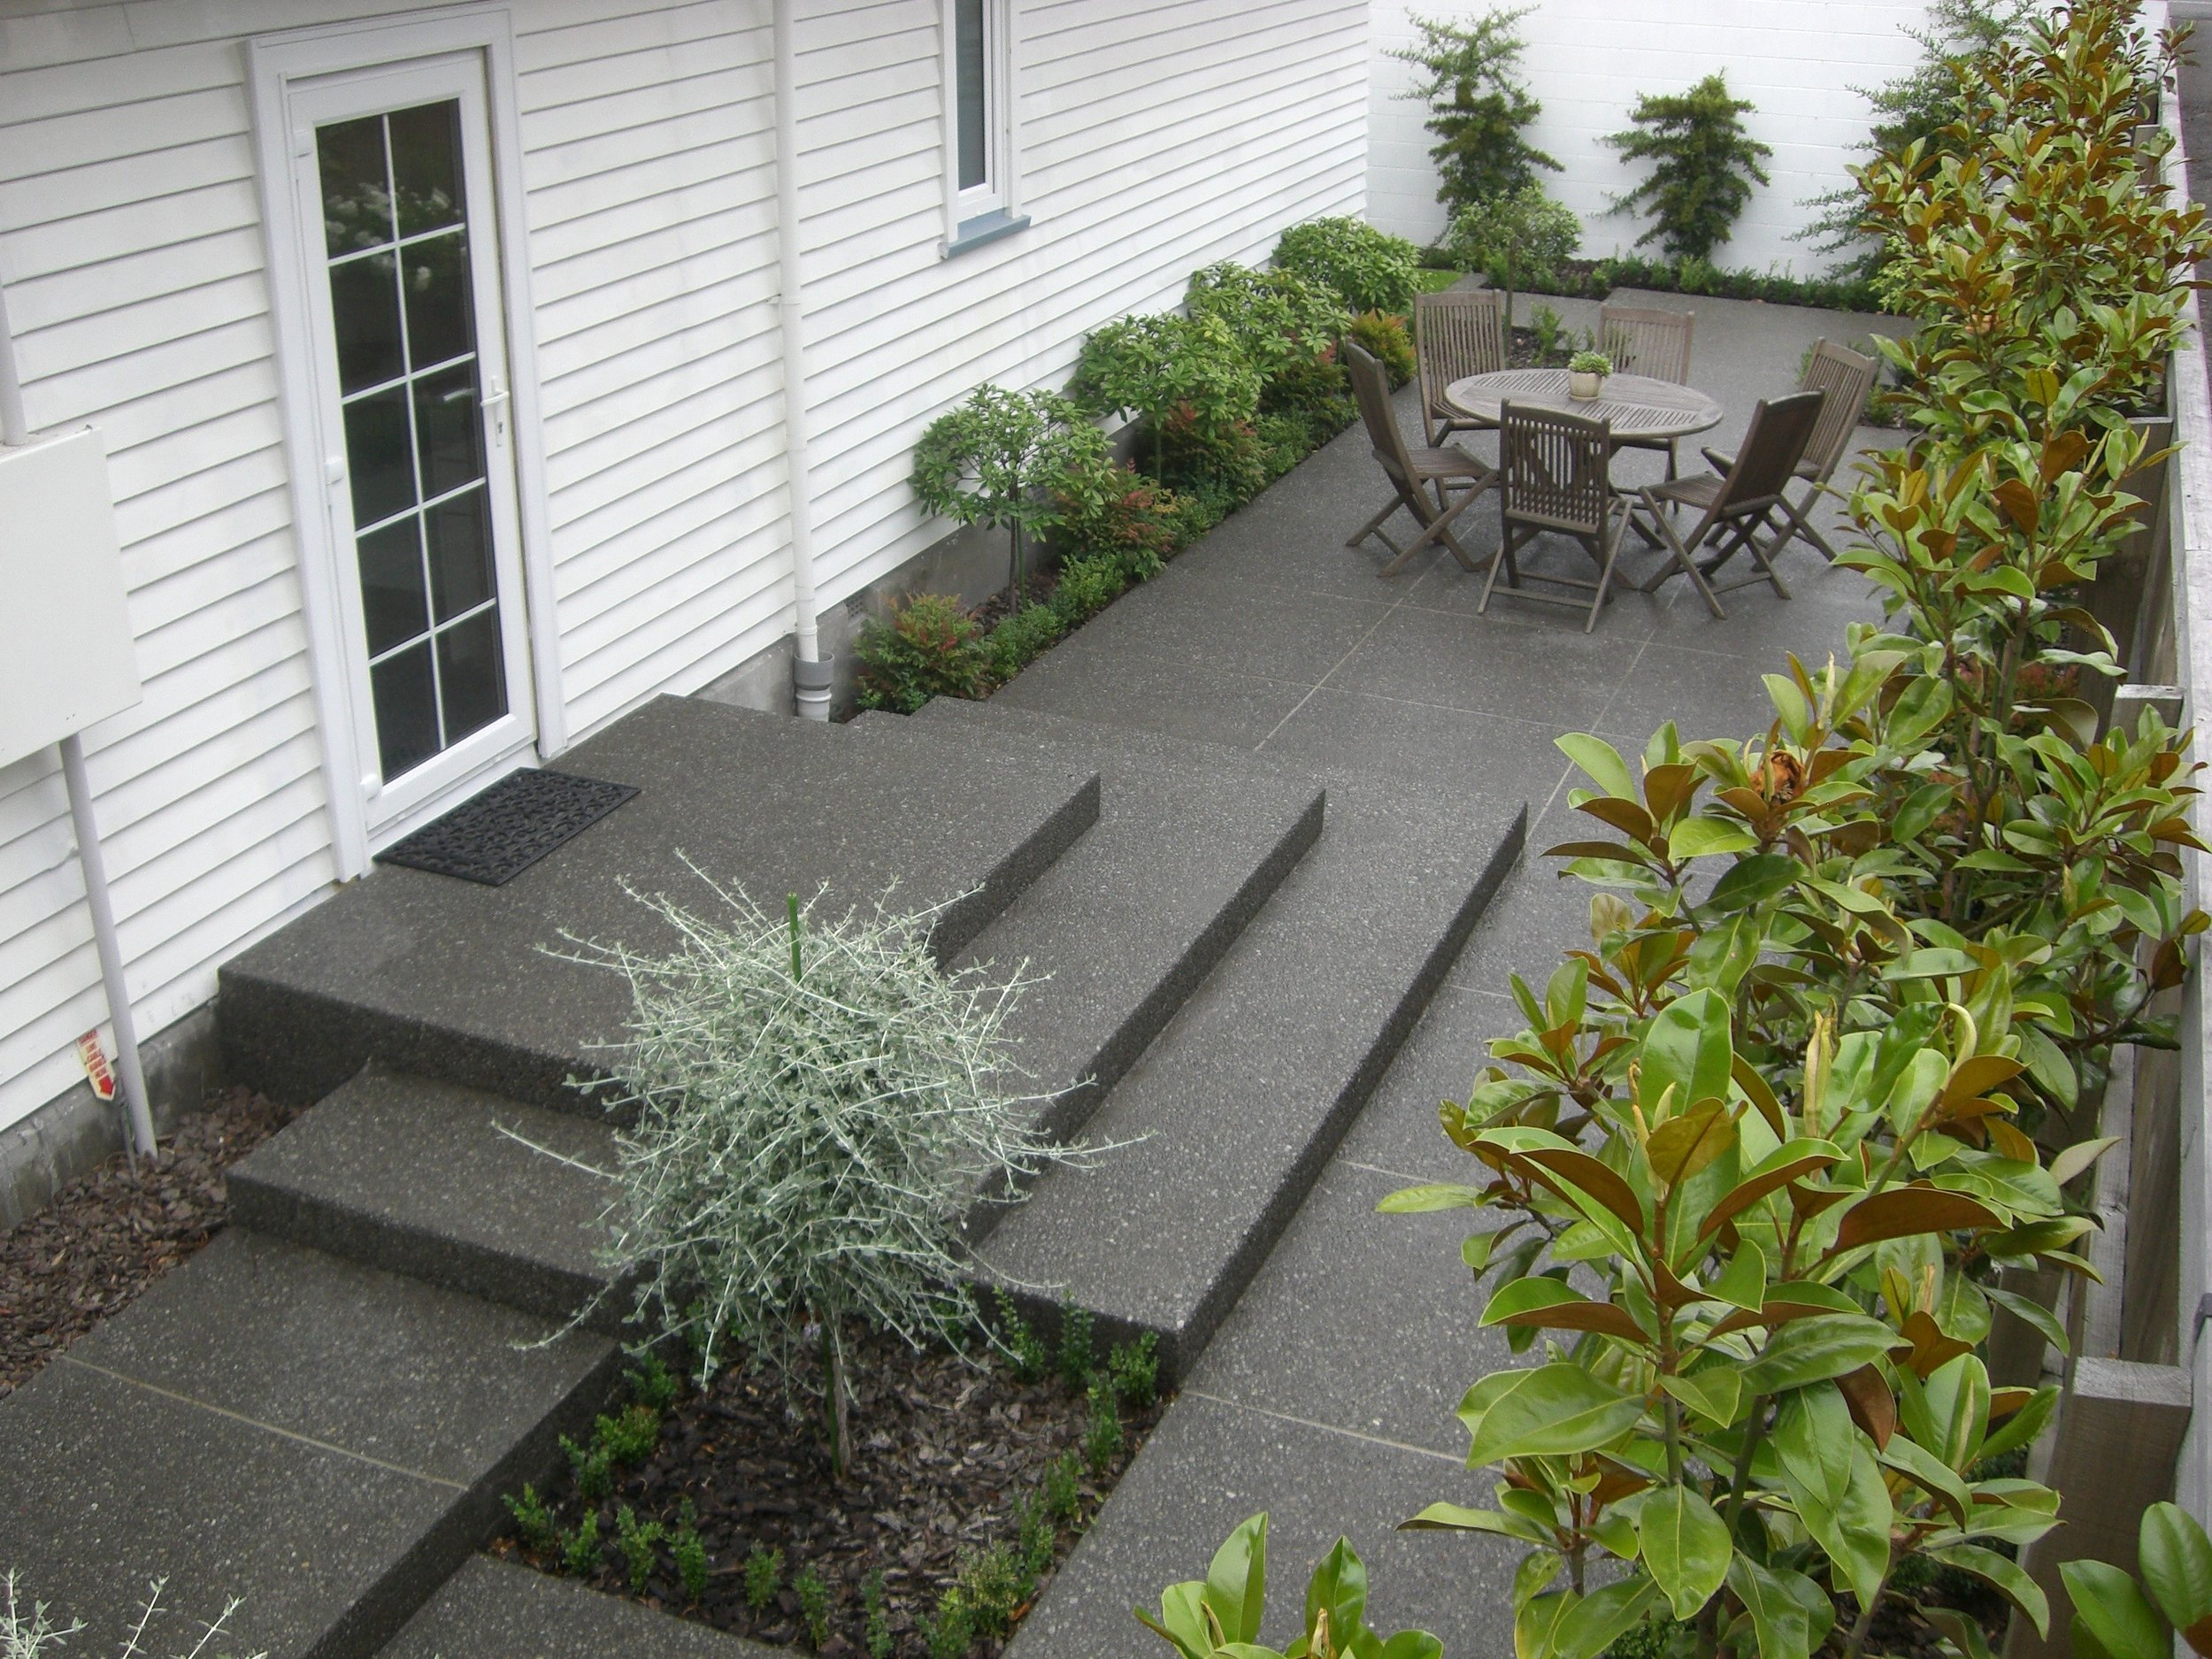 Steps & courtyard CIMG1690.jpg